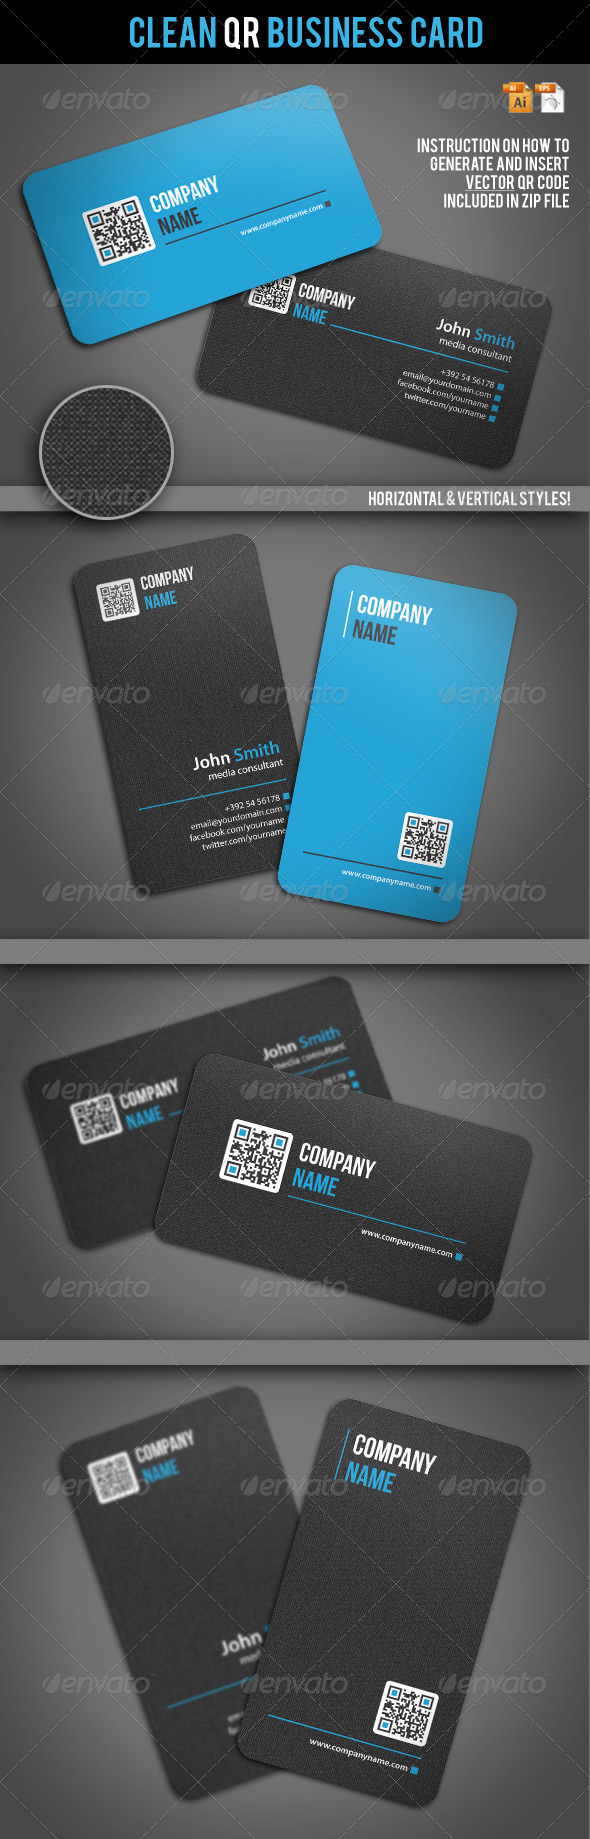 Clean QR Business Card - Corporate Business Cards